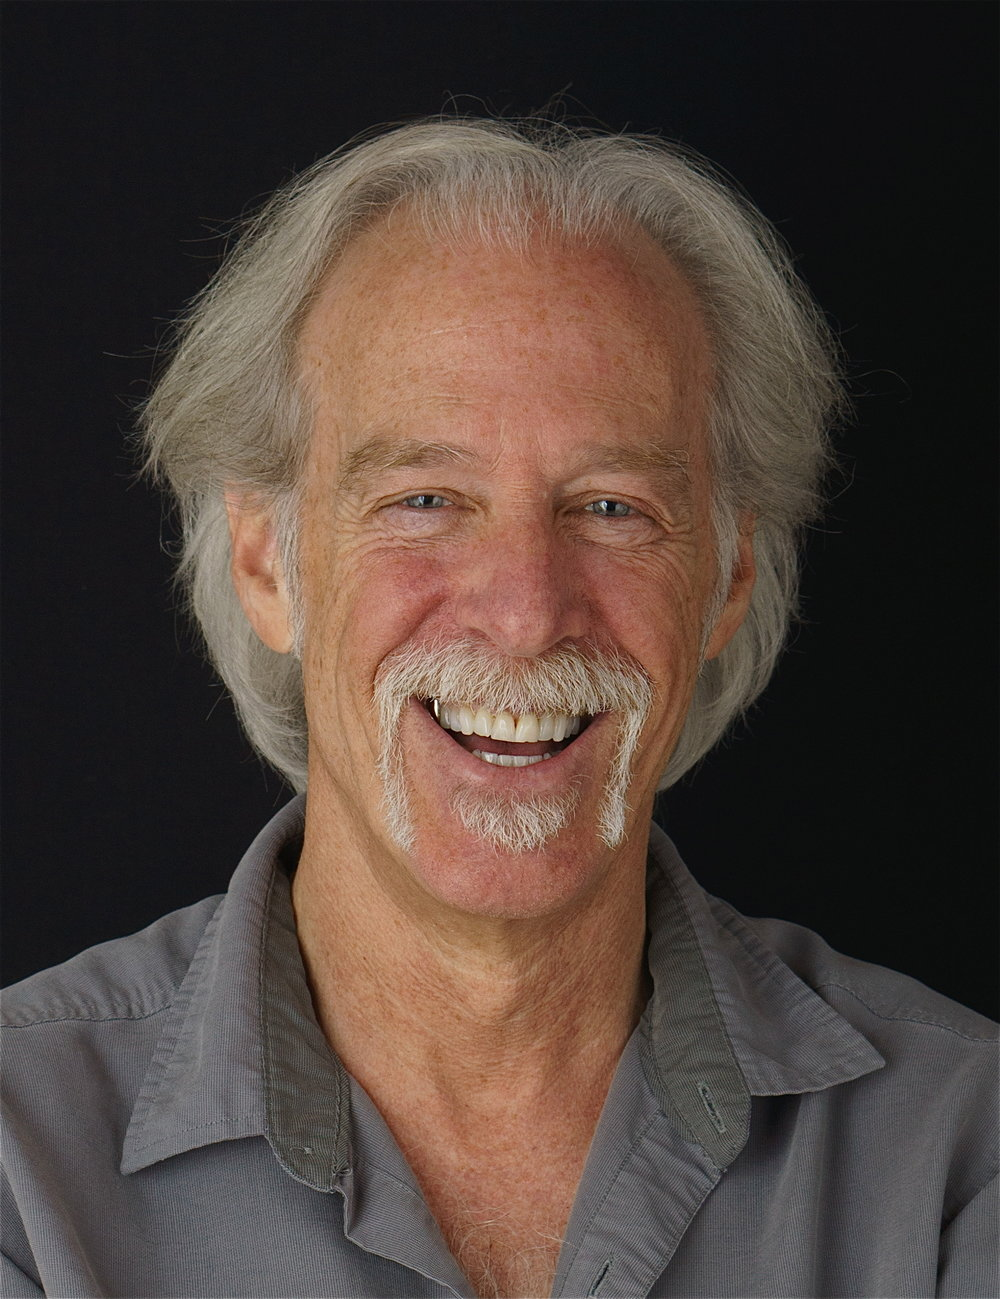 Gregg Levoy - Gregg Levoy is the author of Callings: Finding and Following An Authentic Life (Random House) and Vital Signs: The Nature and Nurture of Passion (Penguin). He's also the former